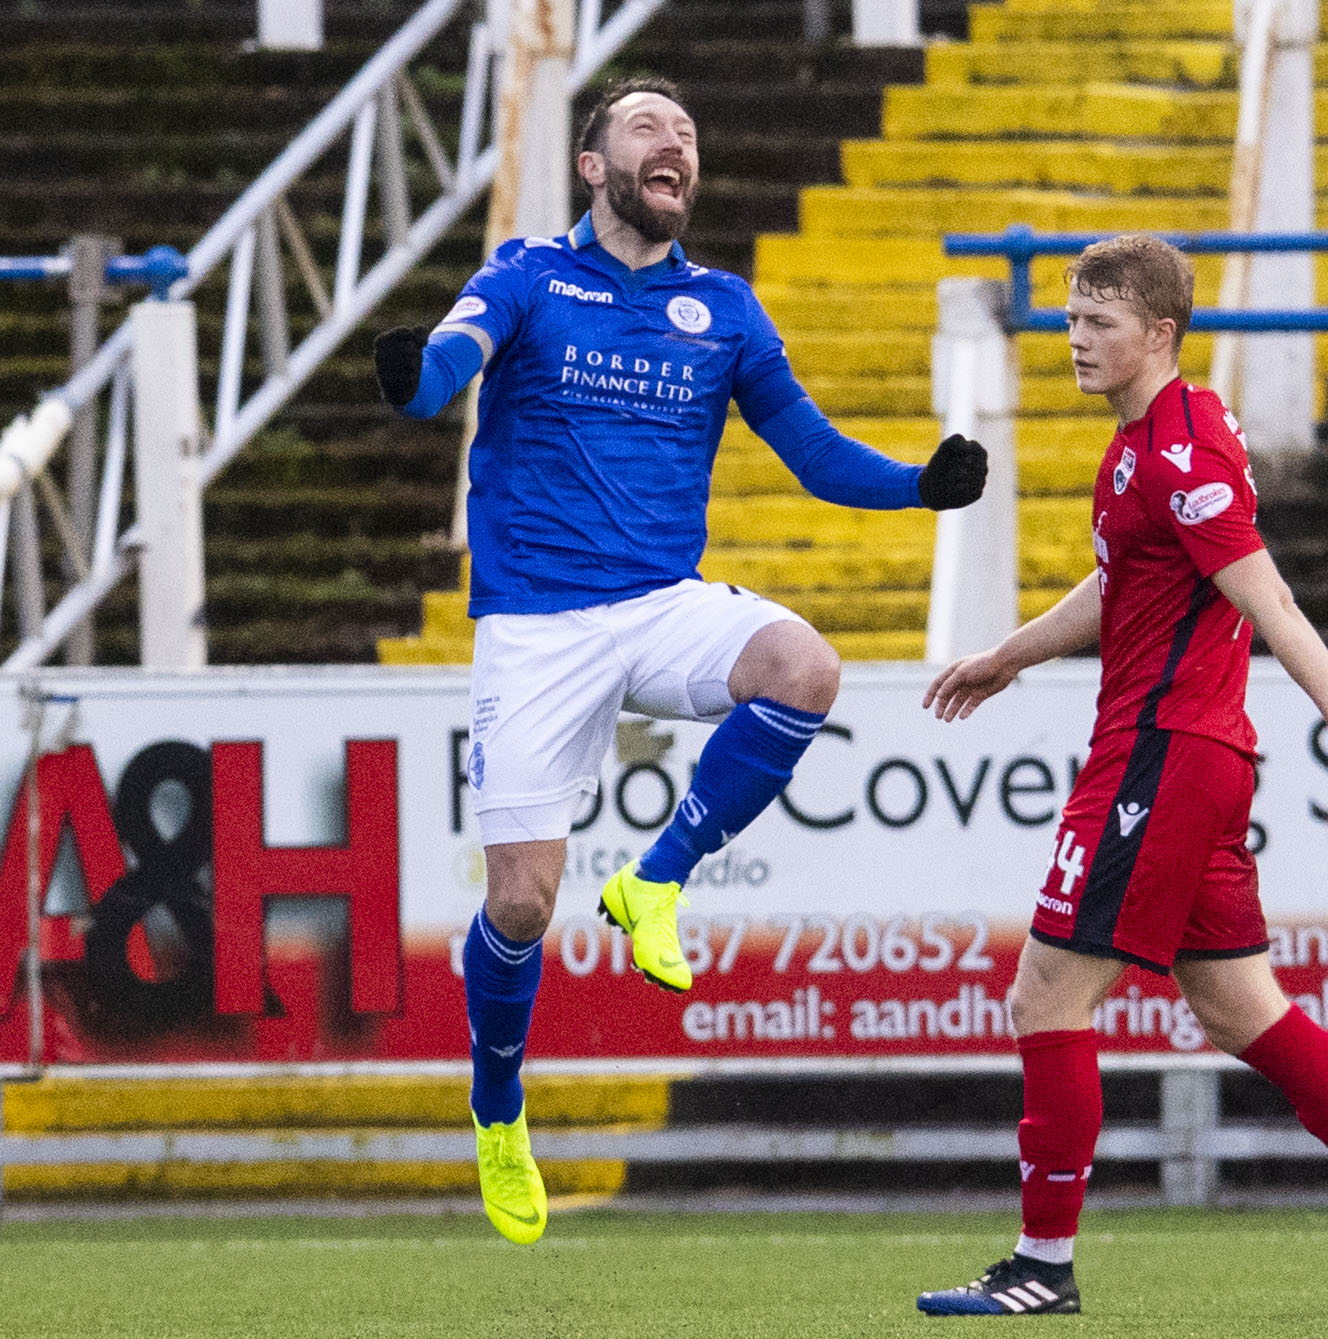 12/01/19 LADBROKES CHAMPIONSHIP QOTS v ROSS COUNTY PALMERSTON PARK - DUMFRIES Queen of the South's Stephen Dobbie celebrates his opener